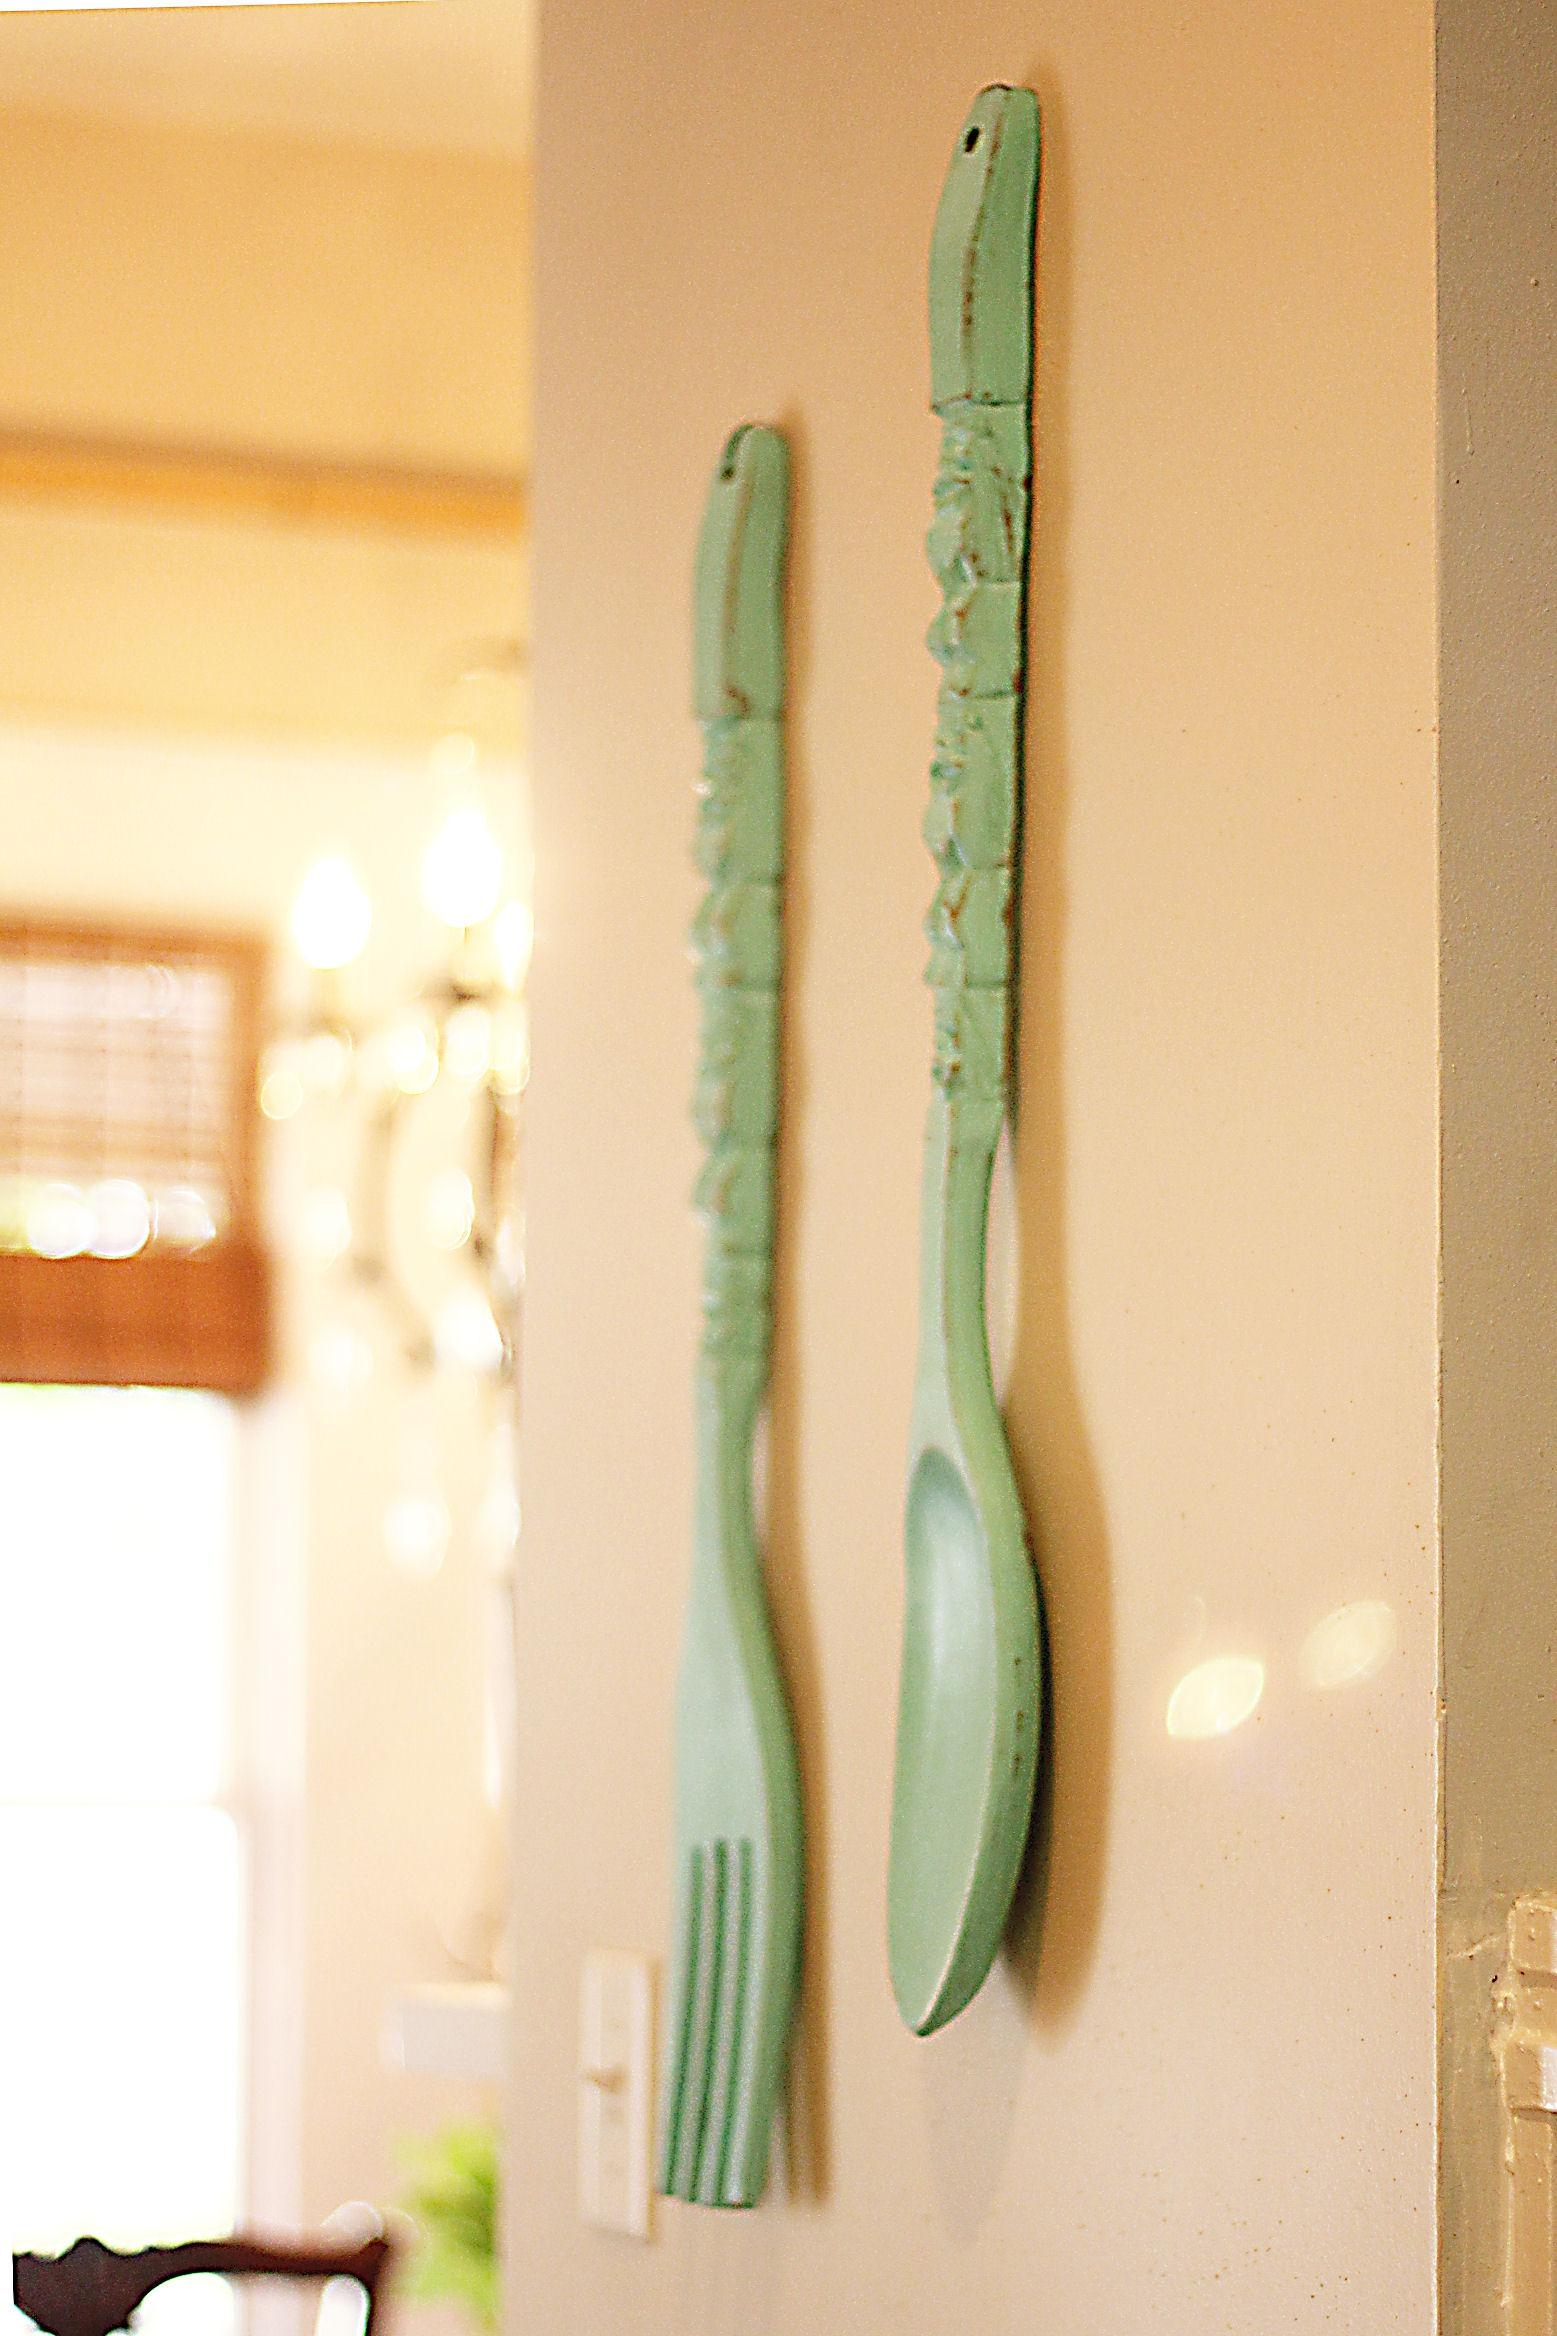 Wall Art Ideas: Wooden Fork and Spoon Wall Art (Explore #12 of 20 ...